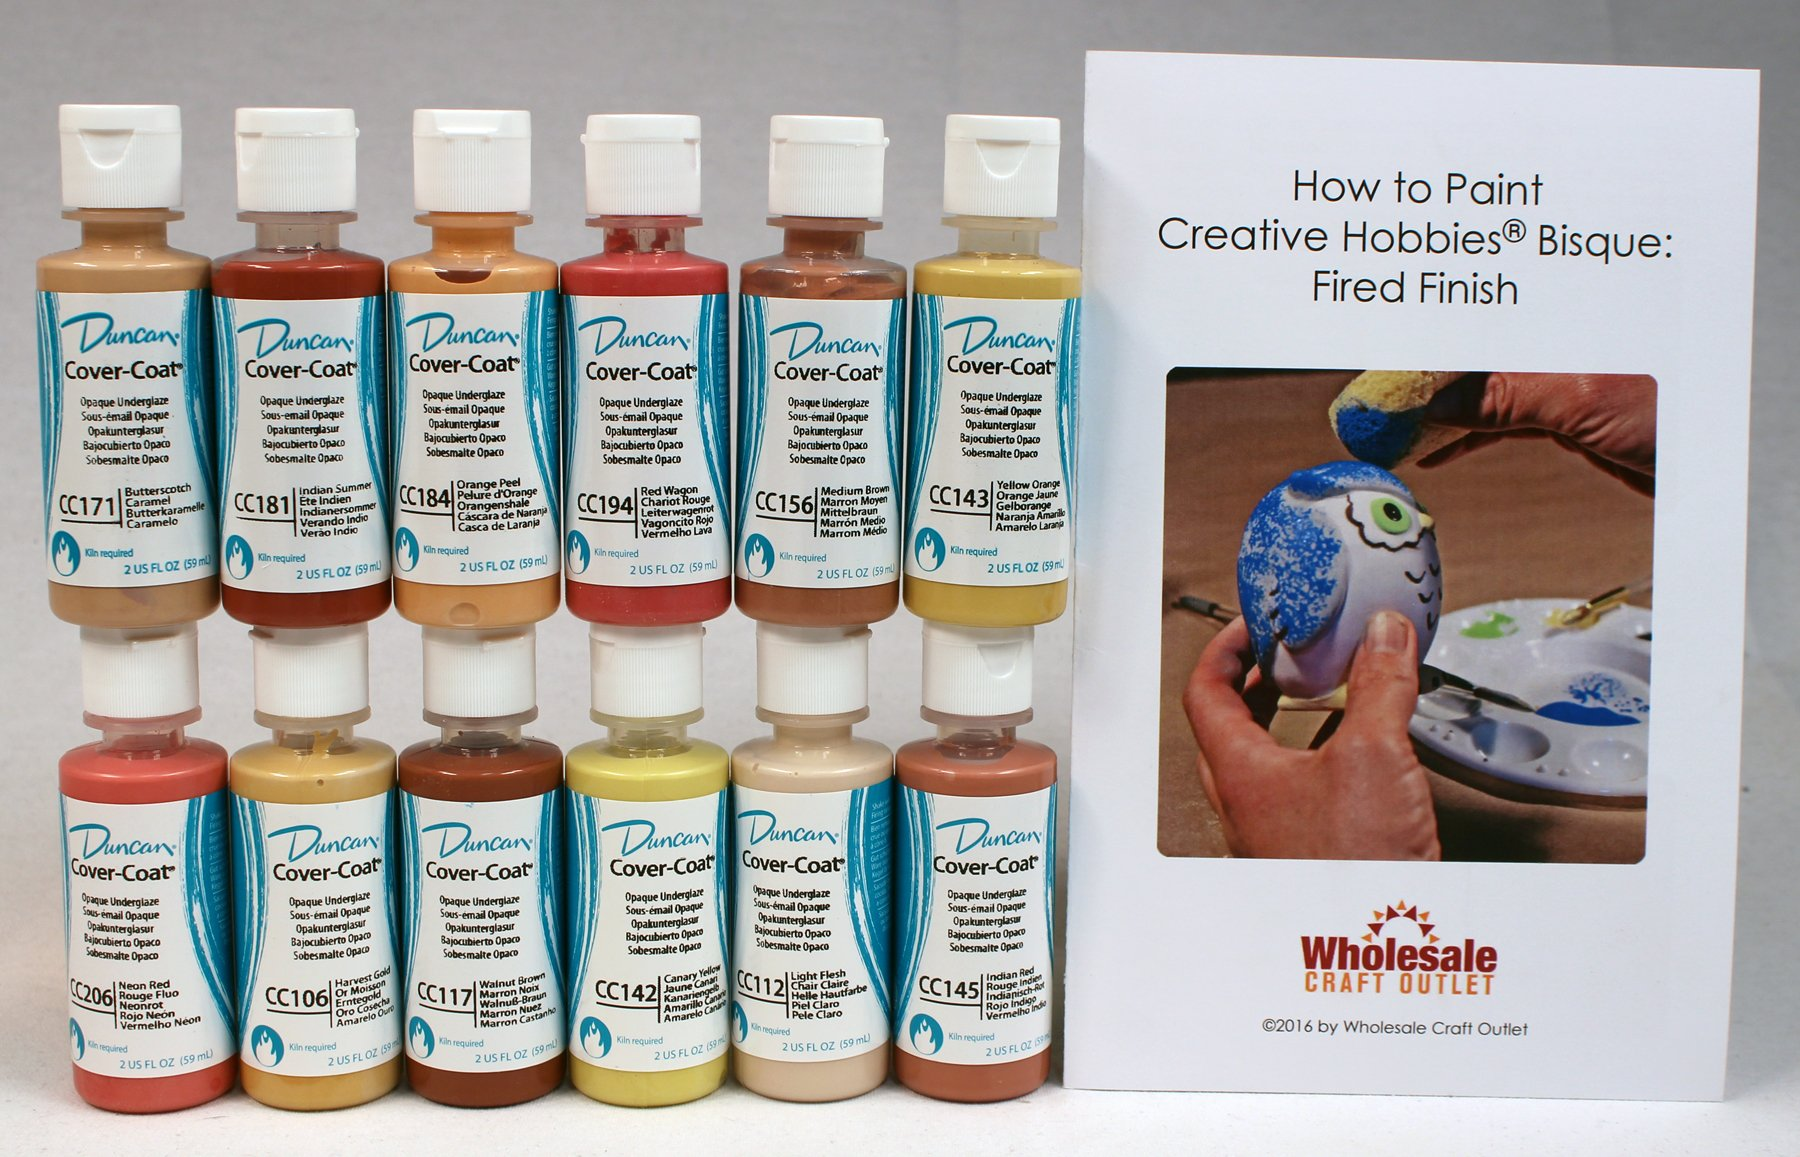 Duncan CCKIT-5 Cover-Coat Opaque Underglaze Warm Colors Paint Set, 12 Best Selling Colors in 2 Ounce Bottles with Free How To Paint Ceramics Book